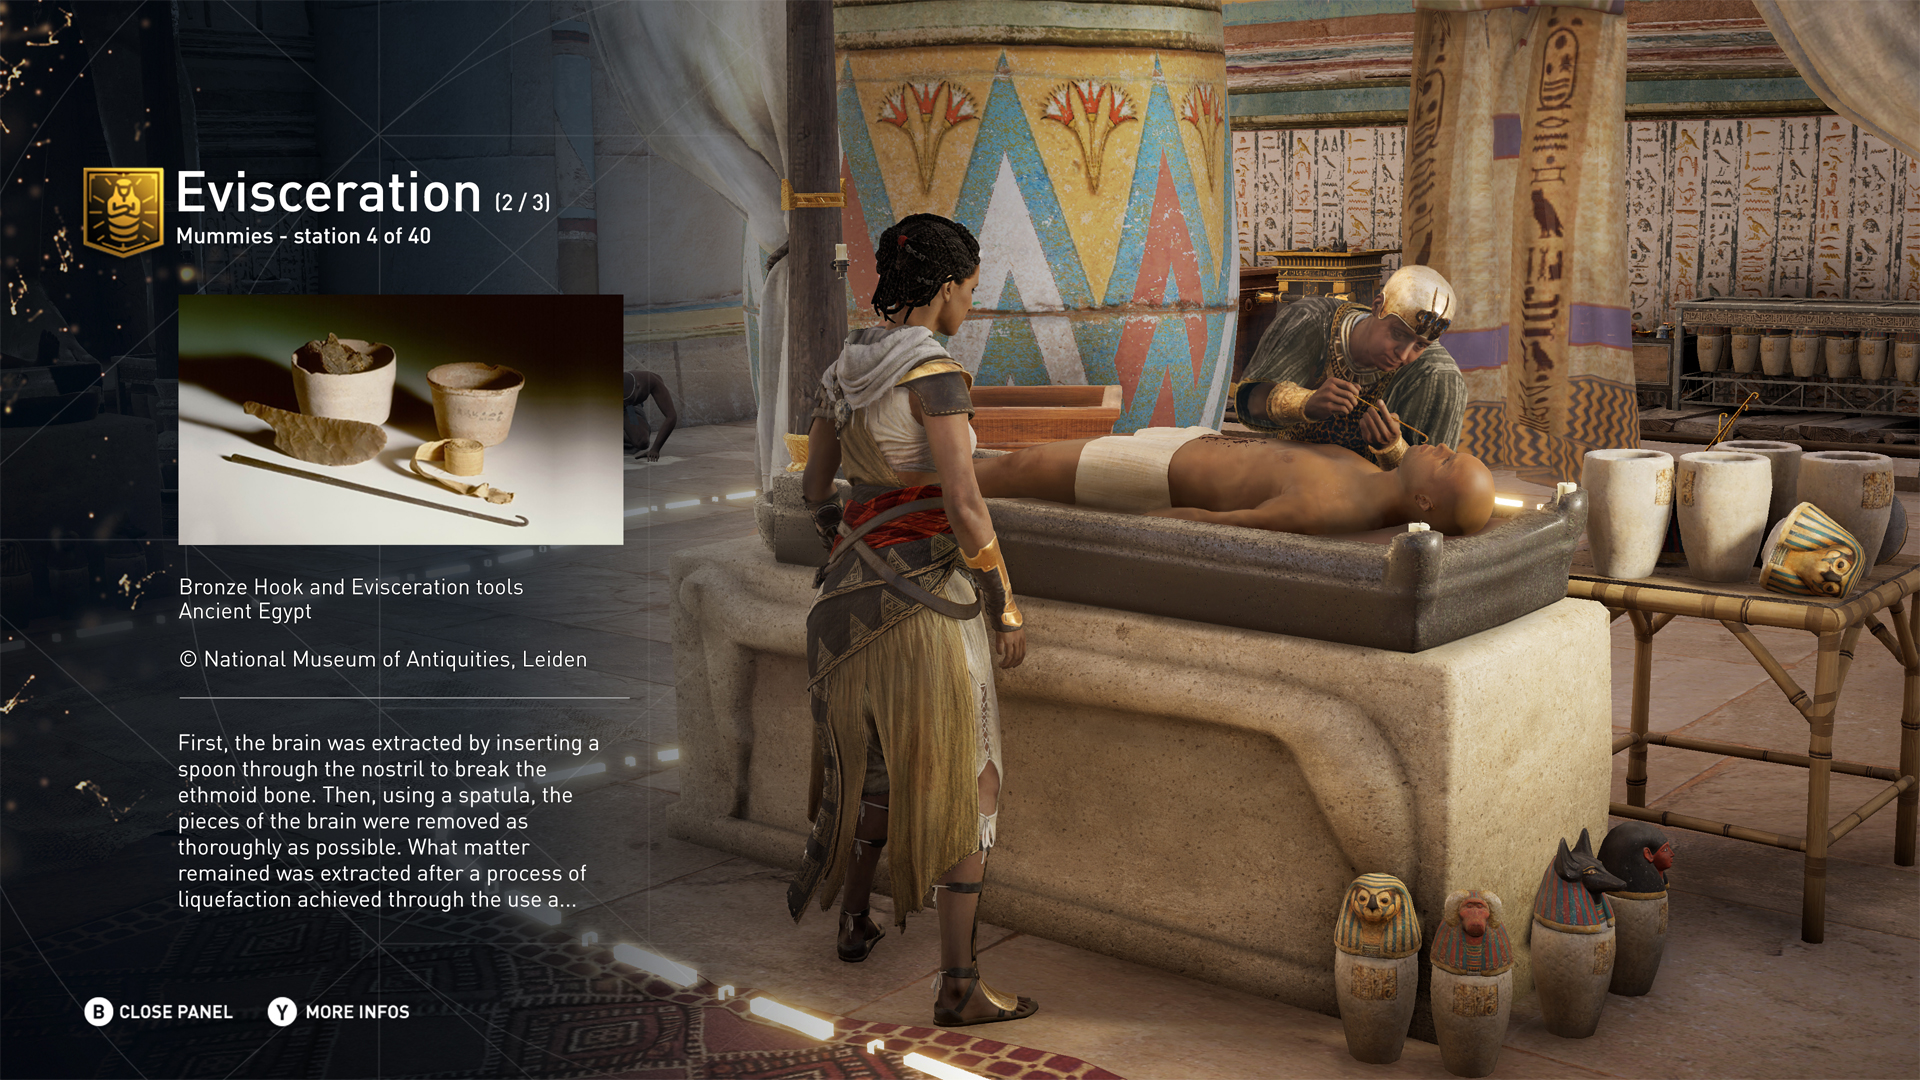 Discovery Tour, educación y Assassin's Creed: Origins se unirán en 2018